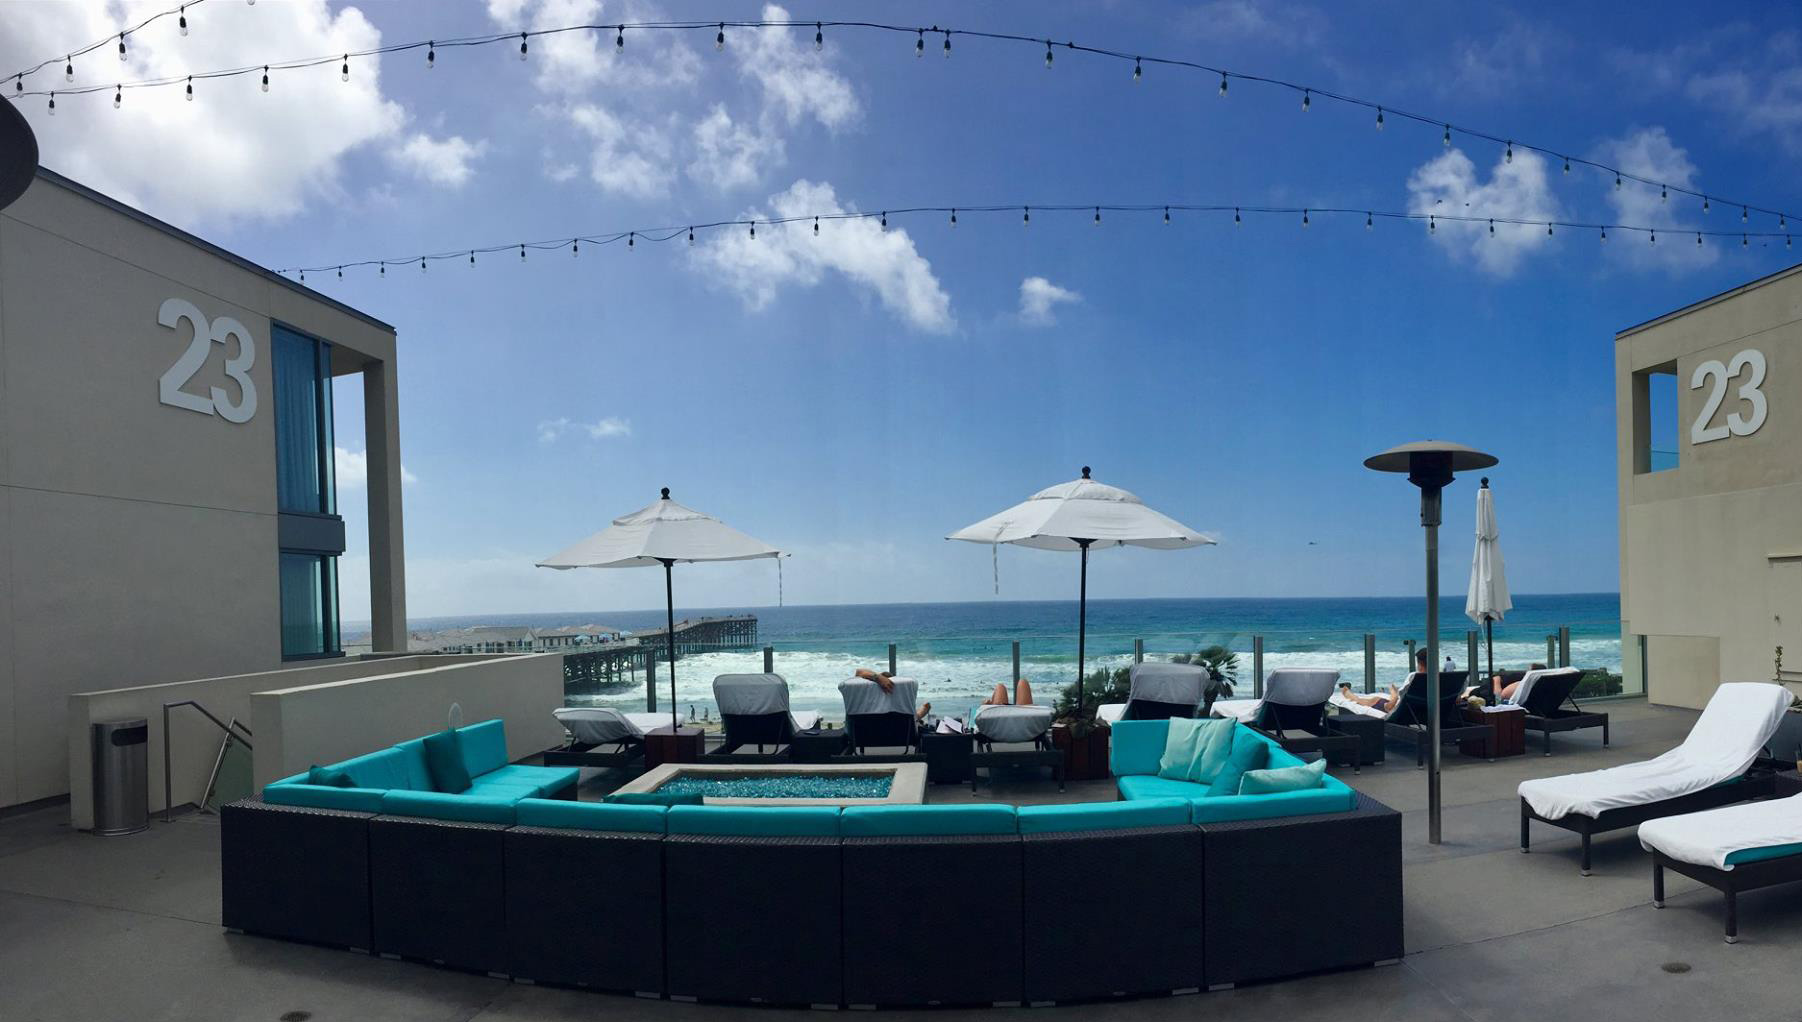 San Diego Beach Hotels | Tower 23 Hotel on the Beach